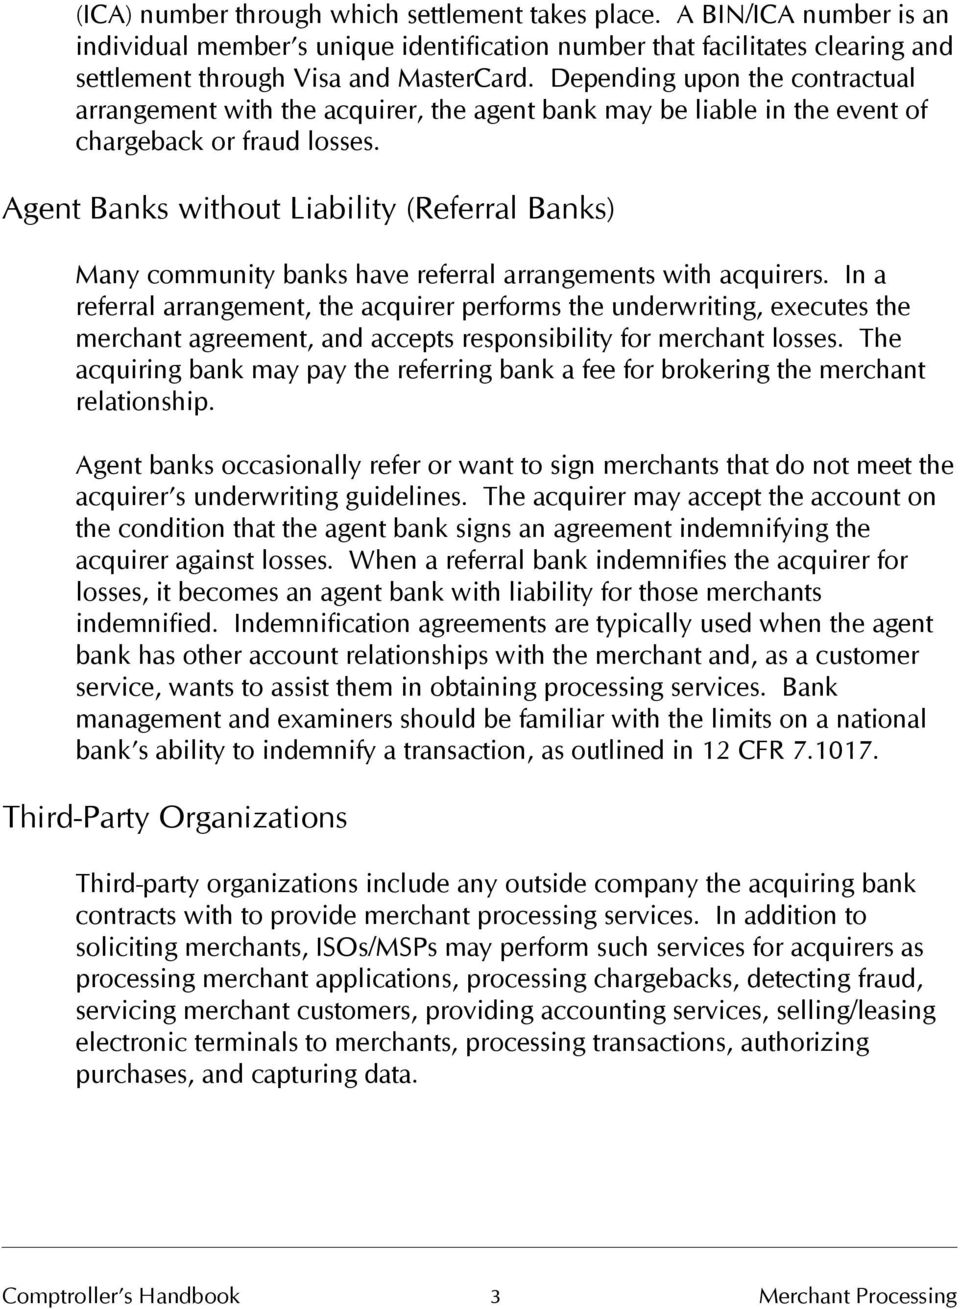 Agent Banks without Liability (Referral Banks) Many community banks have referral arrangements with acquirers.